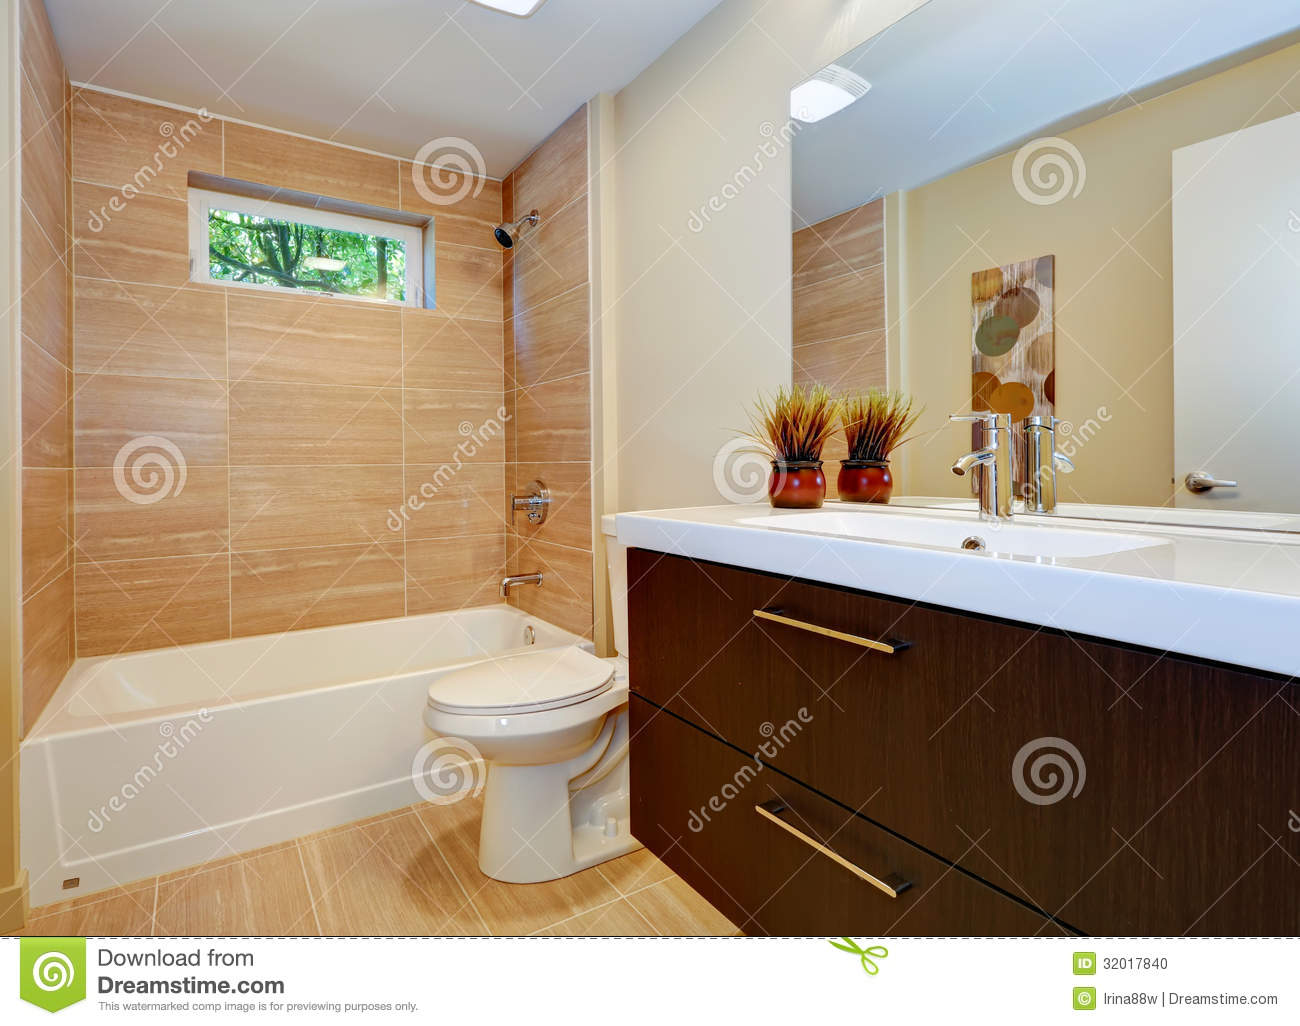 Modern new bathroom design with sink and white tub stock for New bathroom design ideas